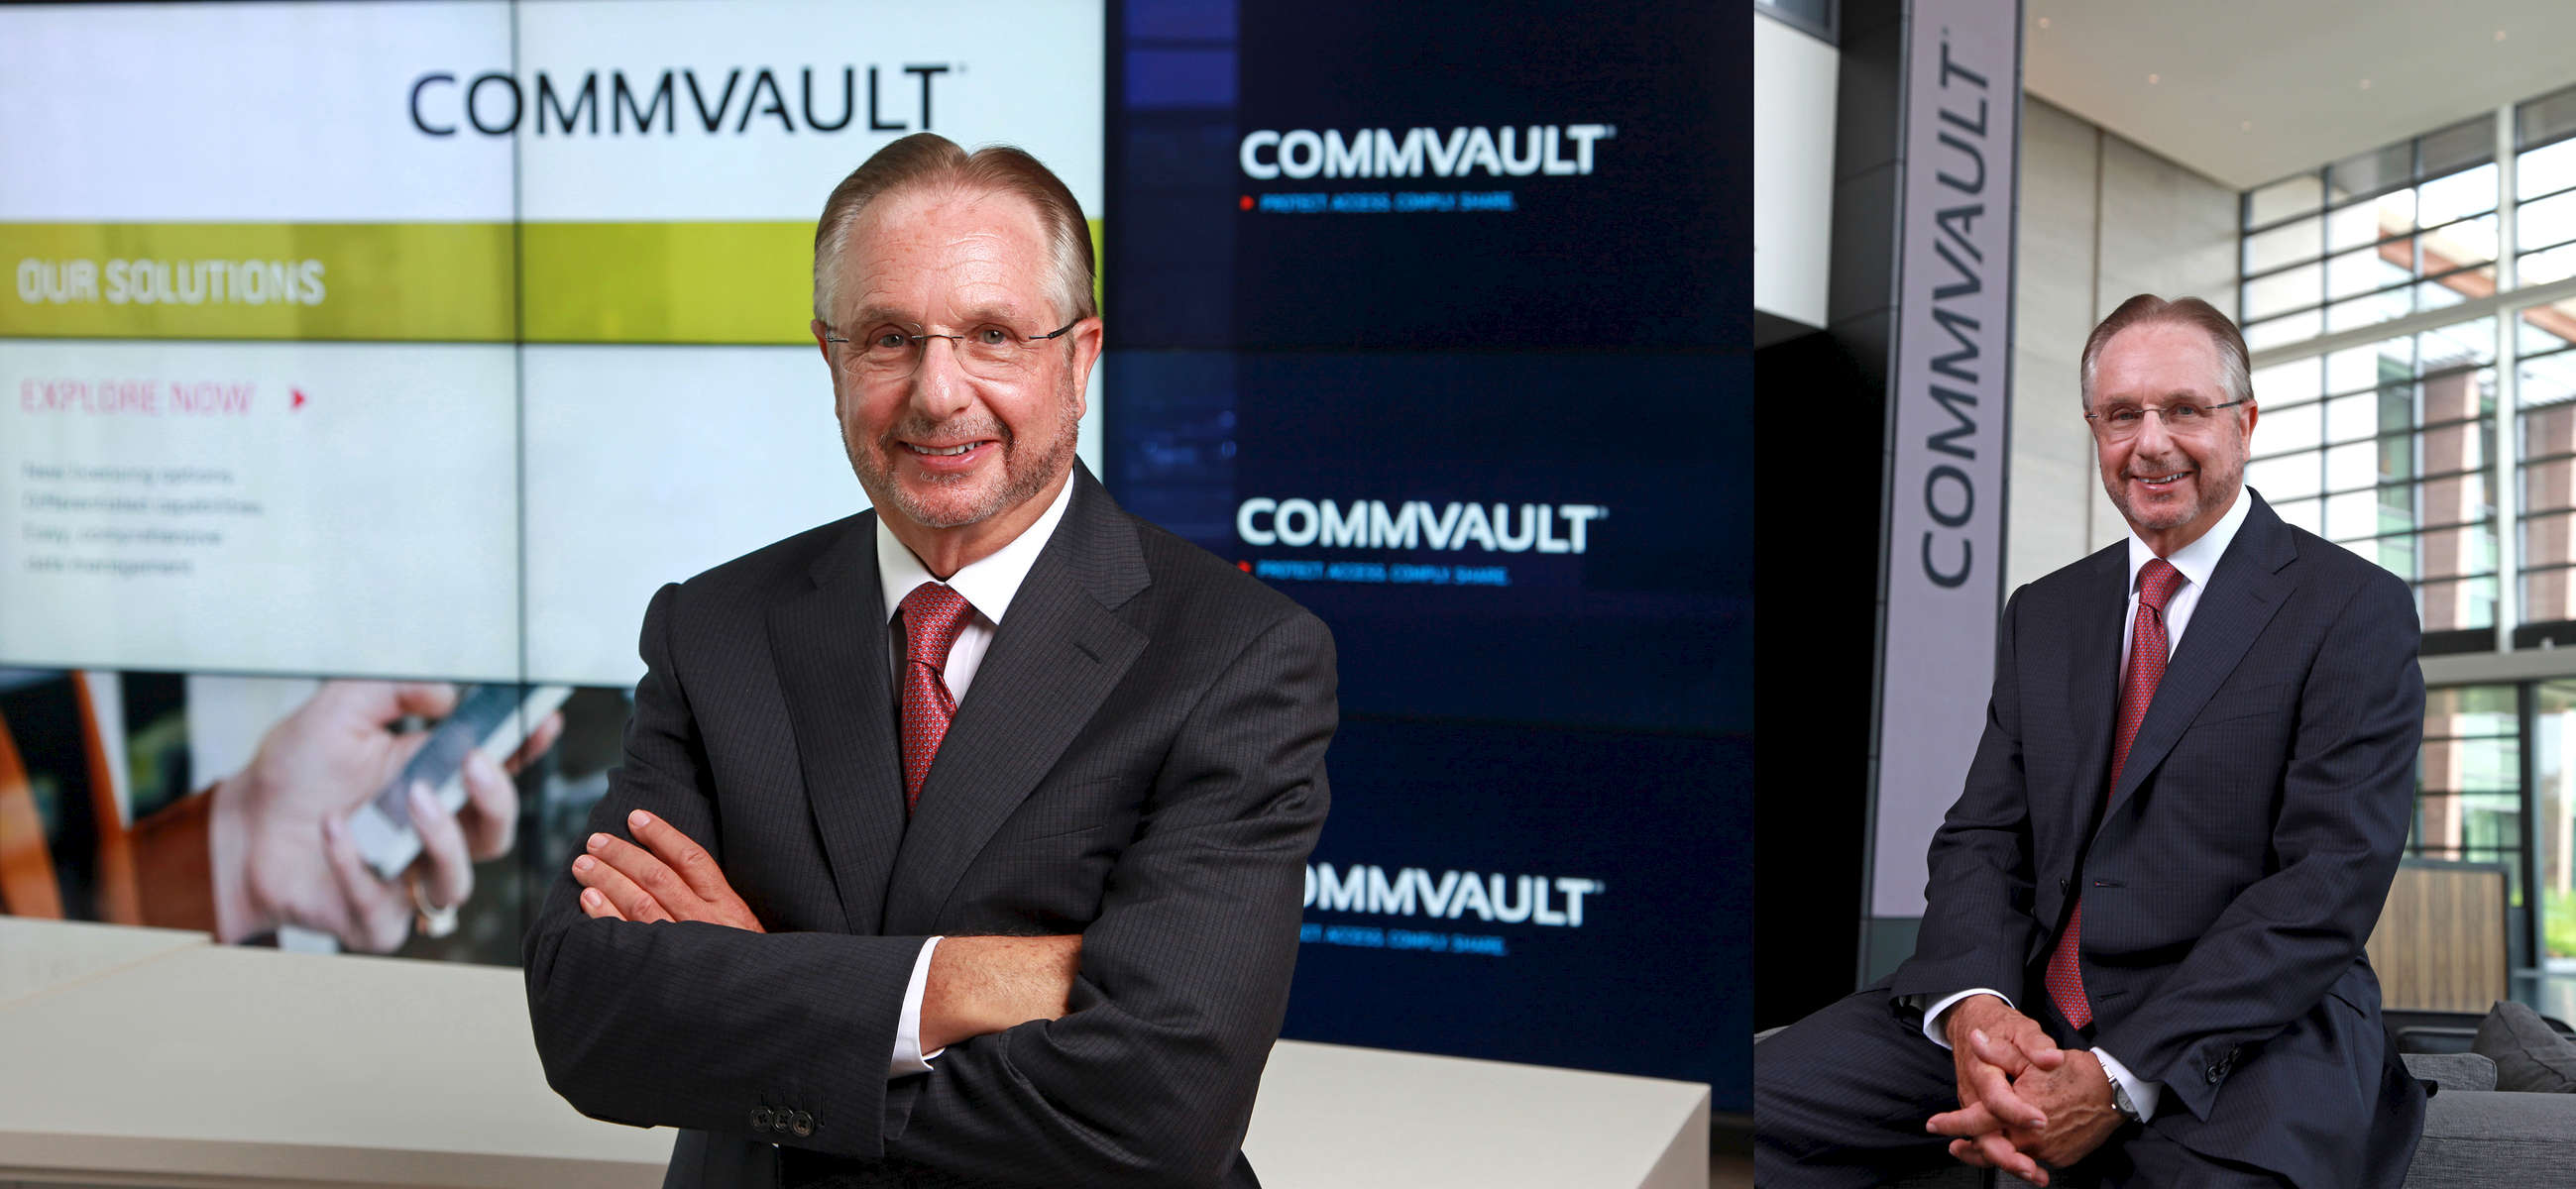 Robert Hammer CEO of CommVault